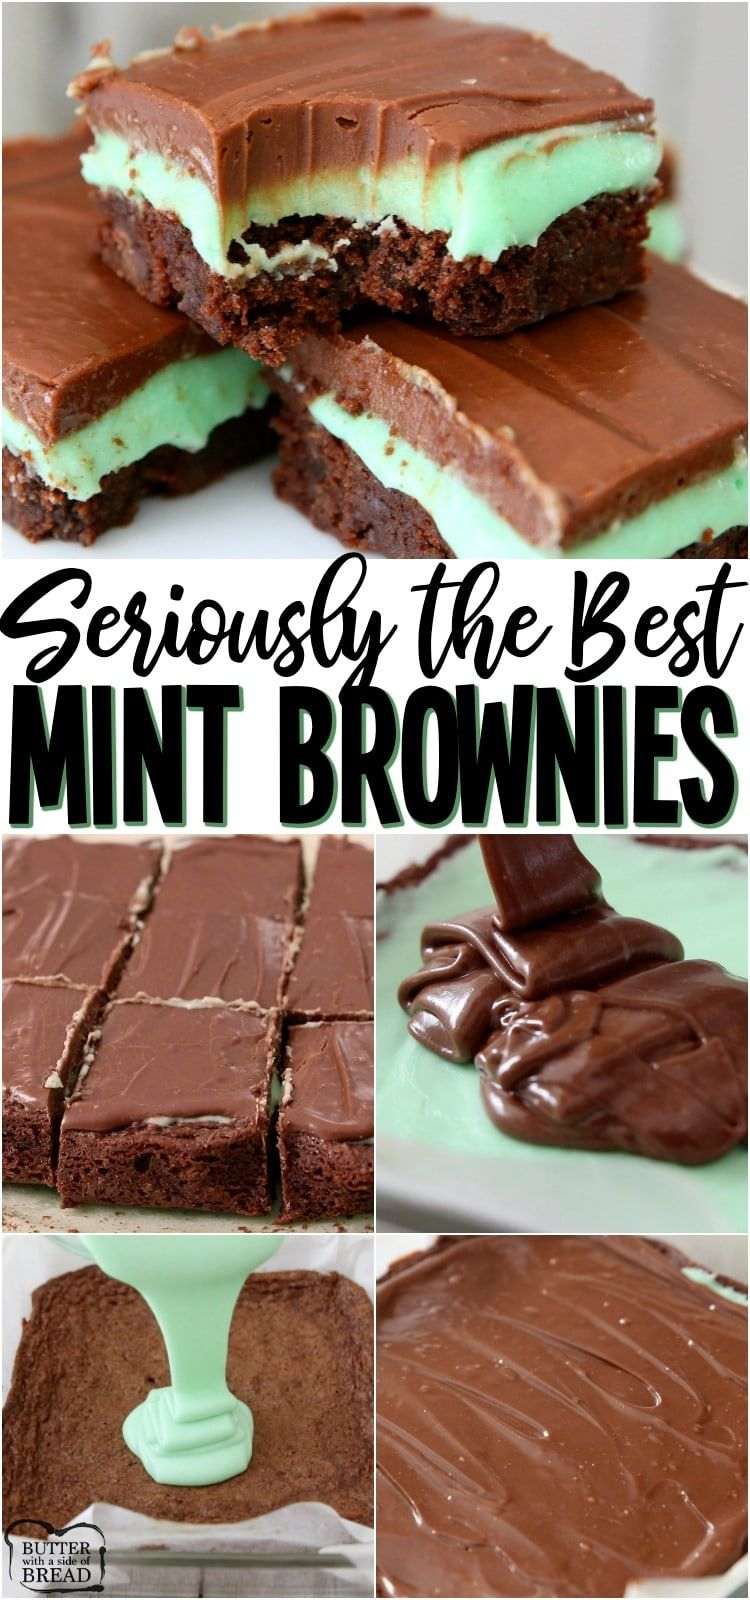 THE BEST MINT BROWNIES {VIDEO}